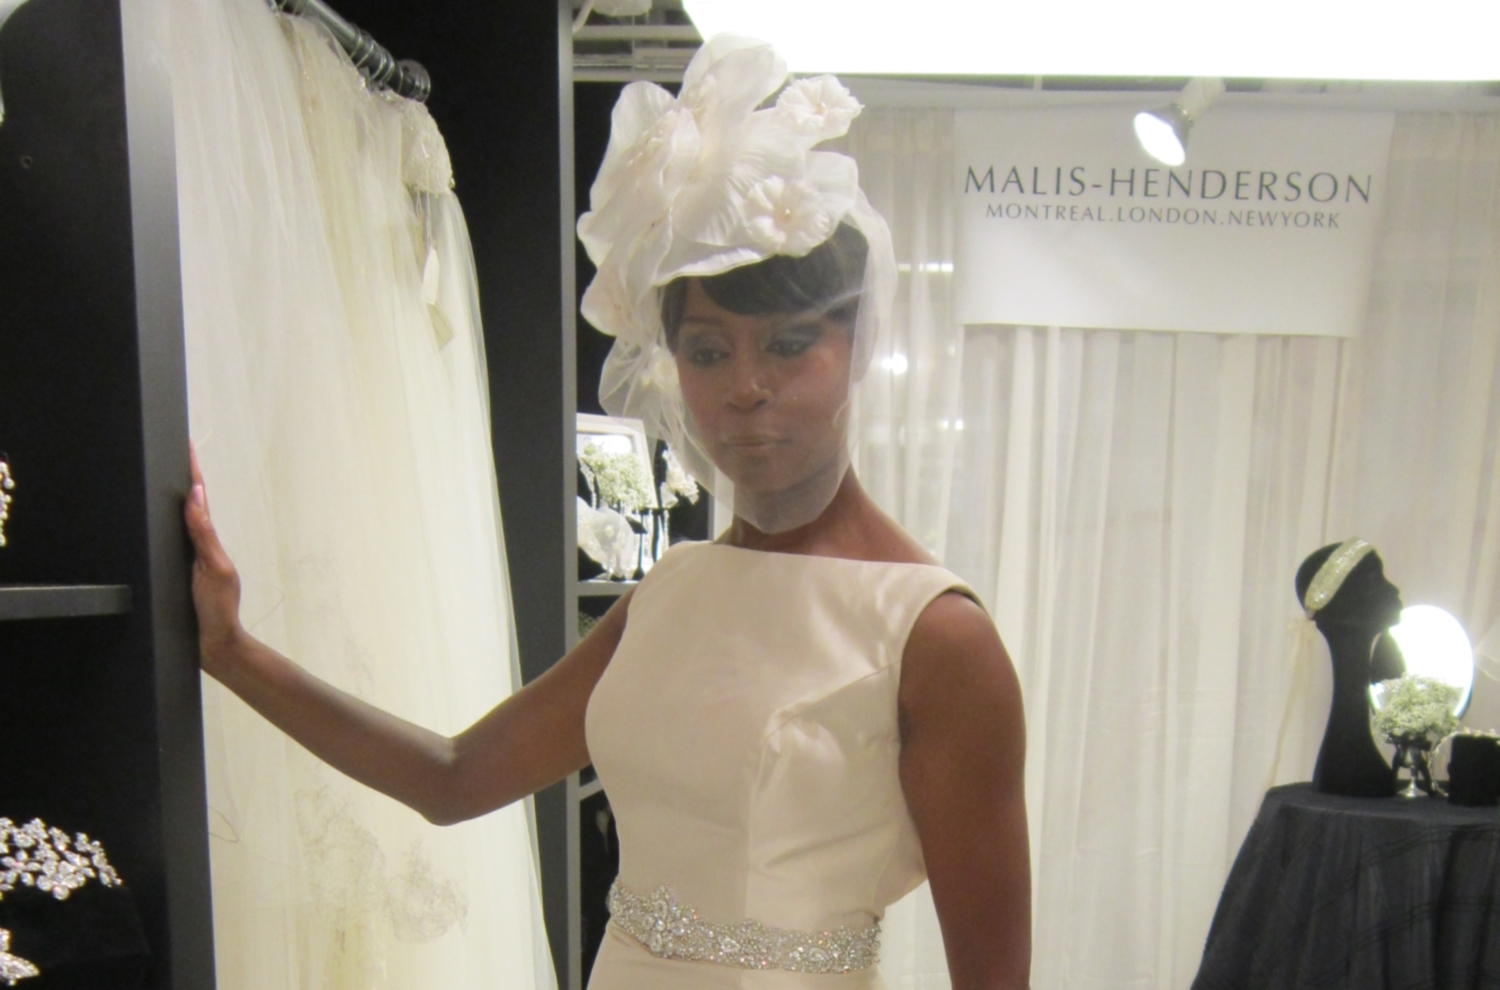 Tanyashows one of the runway headpieces for the DEBI's